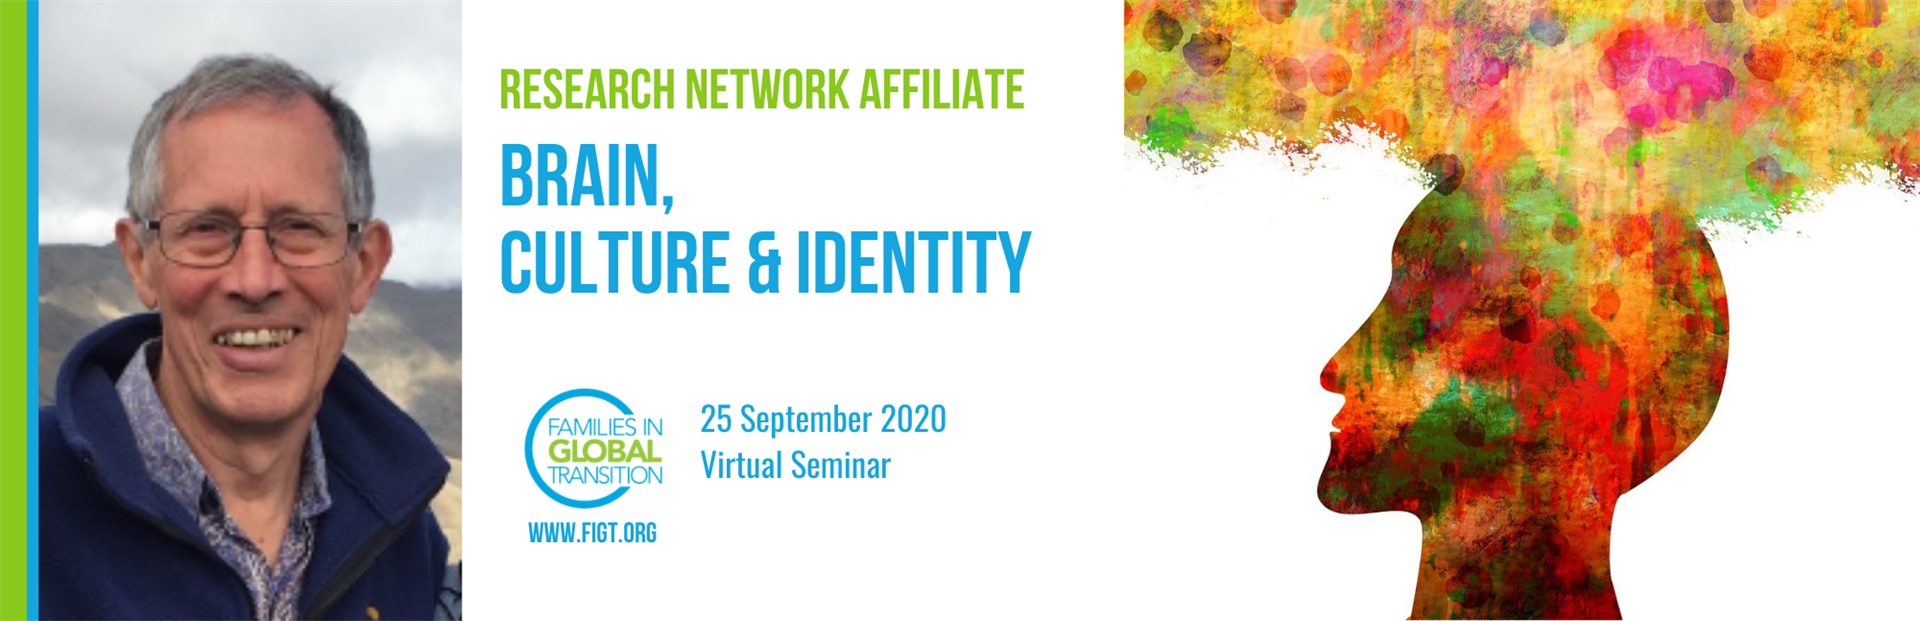 Blog title banner: Brain, culture & identity. 25 Sep 2020 virtual seminar.